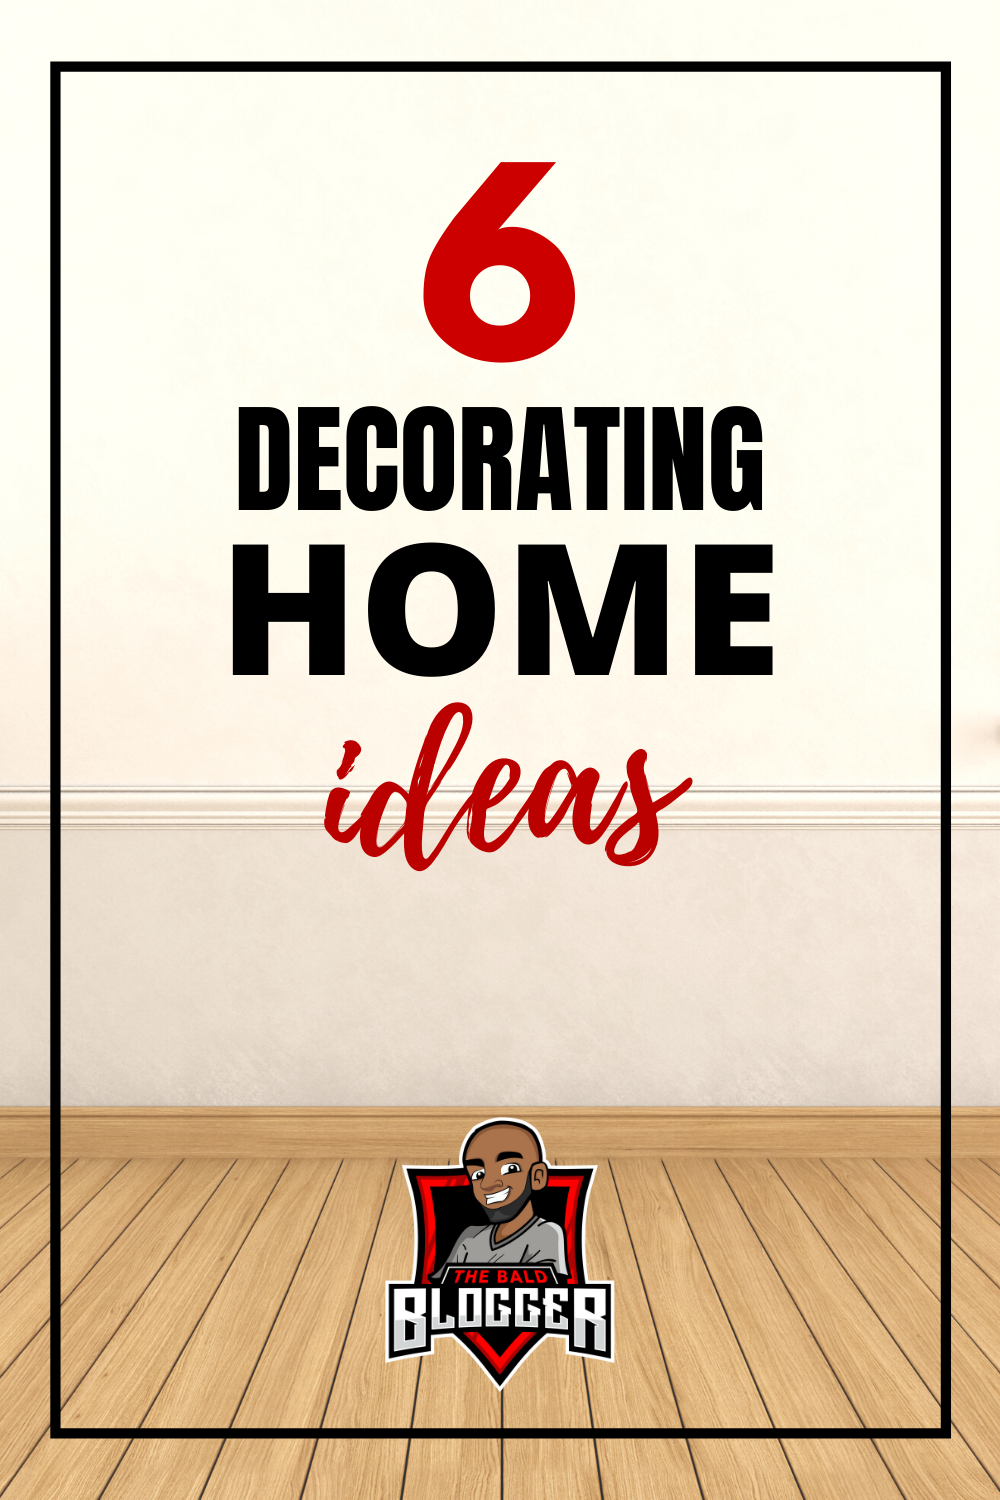 Decorating home ideas that you'll love! Get the inspiration you need to decorate your home. See these 6 ideas for decorating your home.  #decorhomeideas #tipsfordecoratinghome #decoratinghomeideas